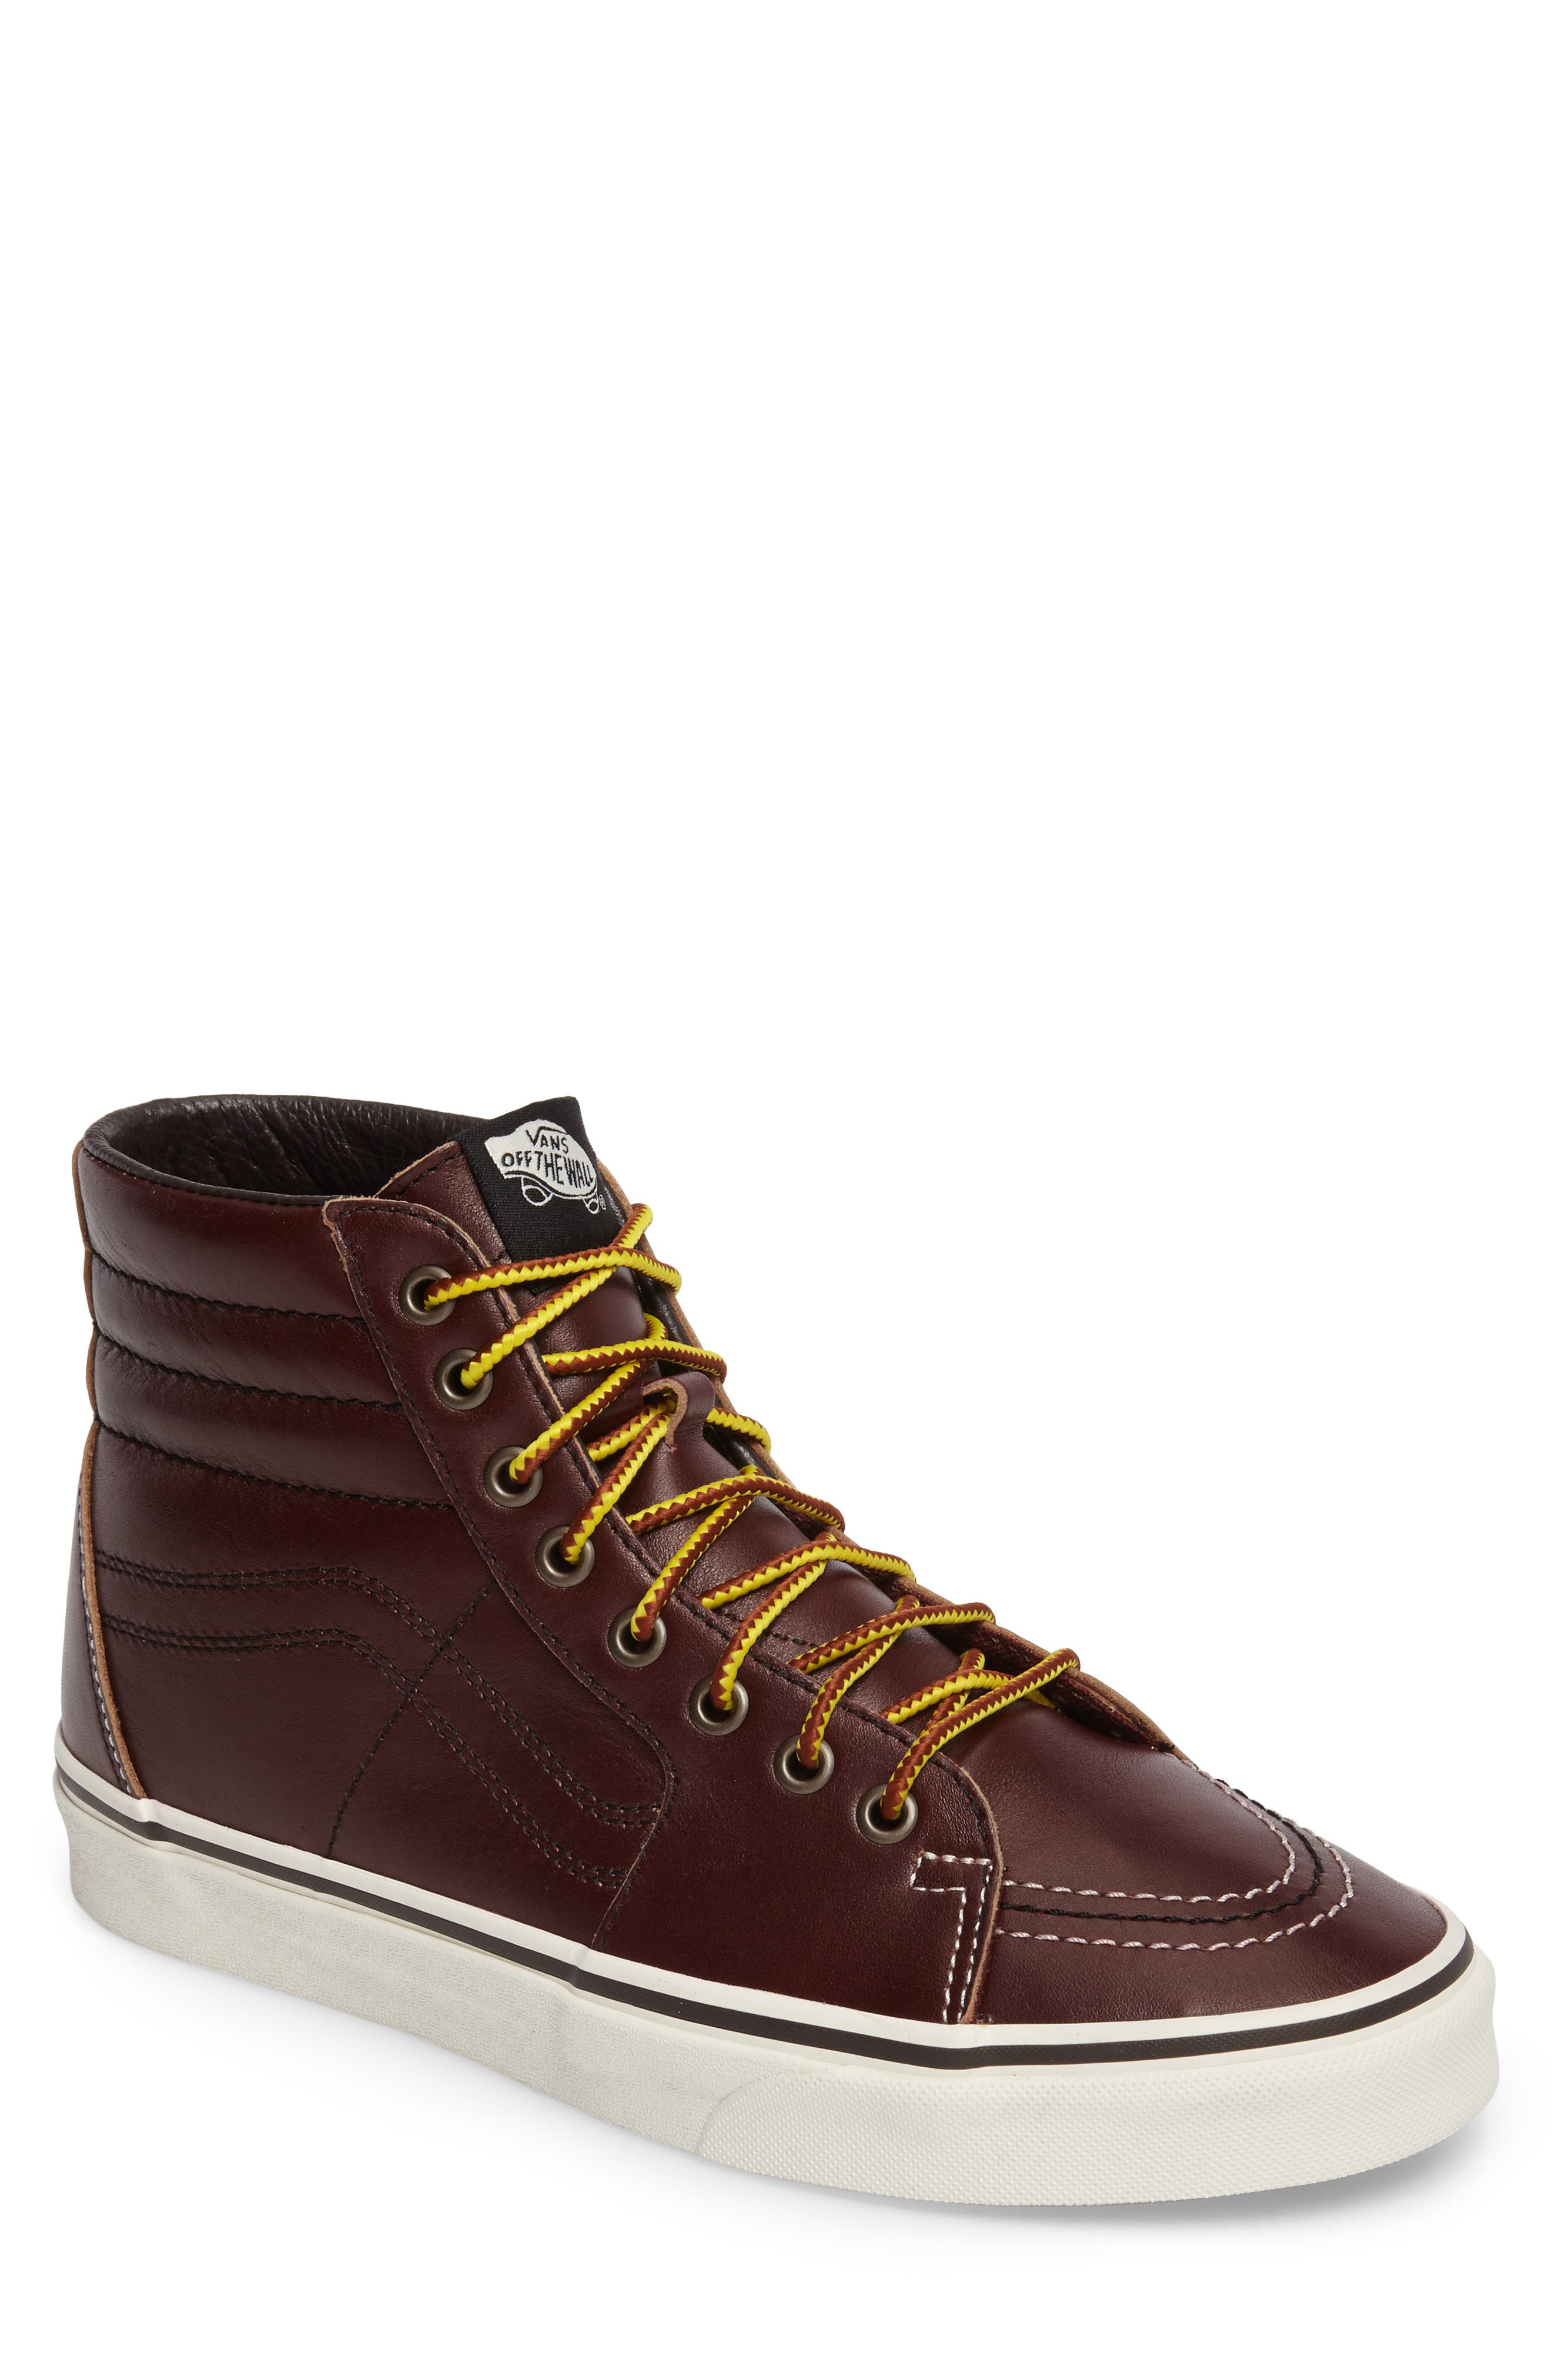 vans mid tops mens